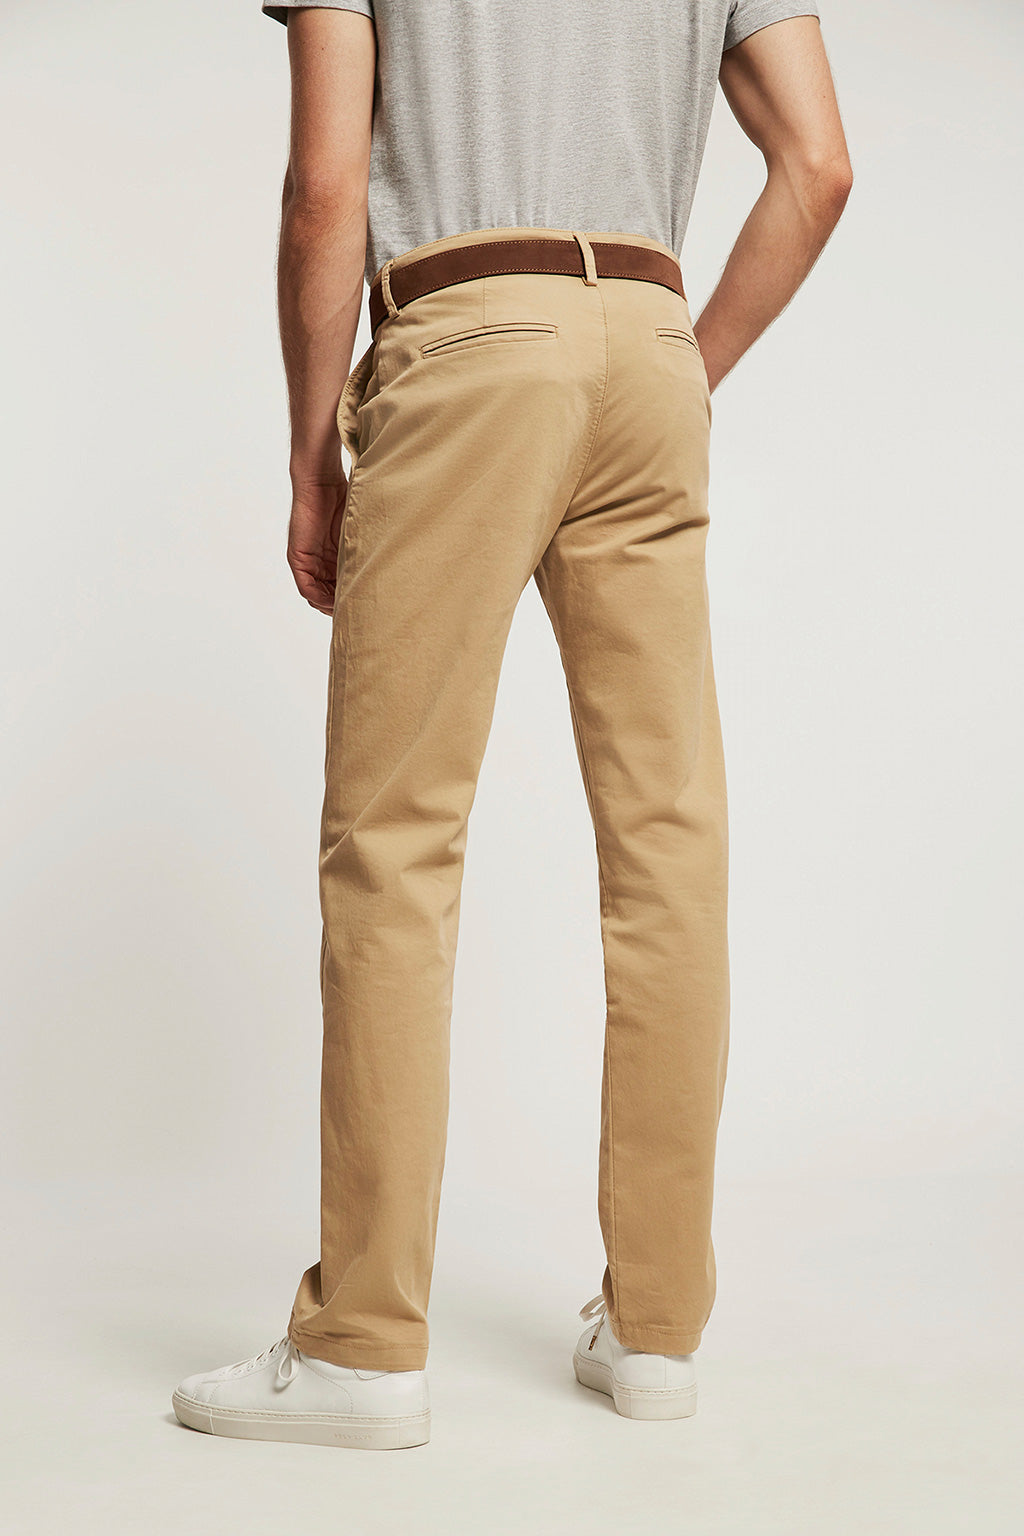 Pantalón Custom Fit Arena